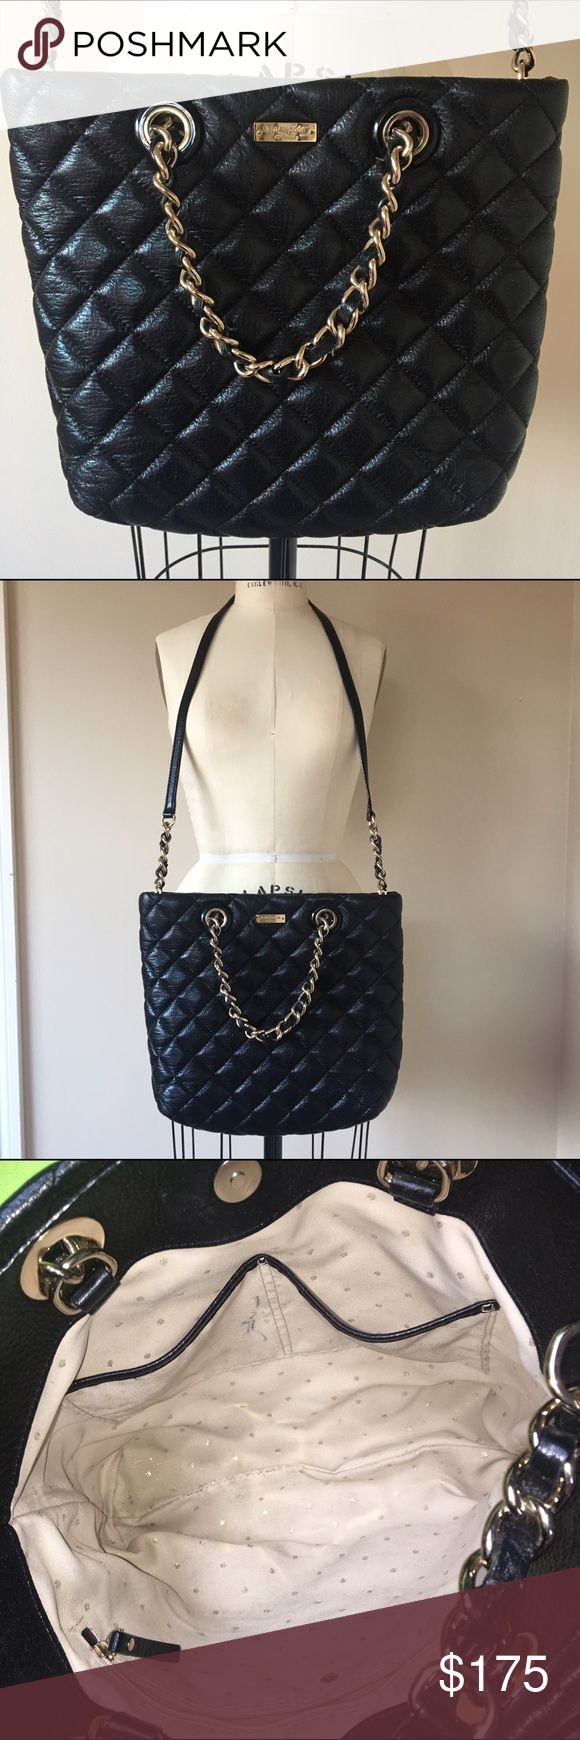 """Kate Spade New York Gold Coast """"Lilou"""" Tote Authentic Kate Spade """"Lilou"""" Tote in black quilted calfskin leather with foil metallic coating. 14K light golden hardware. Woven chain handles with a 4"""" drop. Shoulder strap with a 20"""" drop. Dot-print canvas lining inside with one zip and two open pockets. 11""""H x 11""""W x 4""""D. Weighs approx. 1lb 8oz. Inside has some pen marks and makeup/pen marks in the inner pocket. I have NOT tried to clean this and I'm sure most of it would come out with…"""